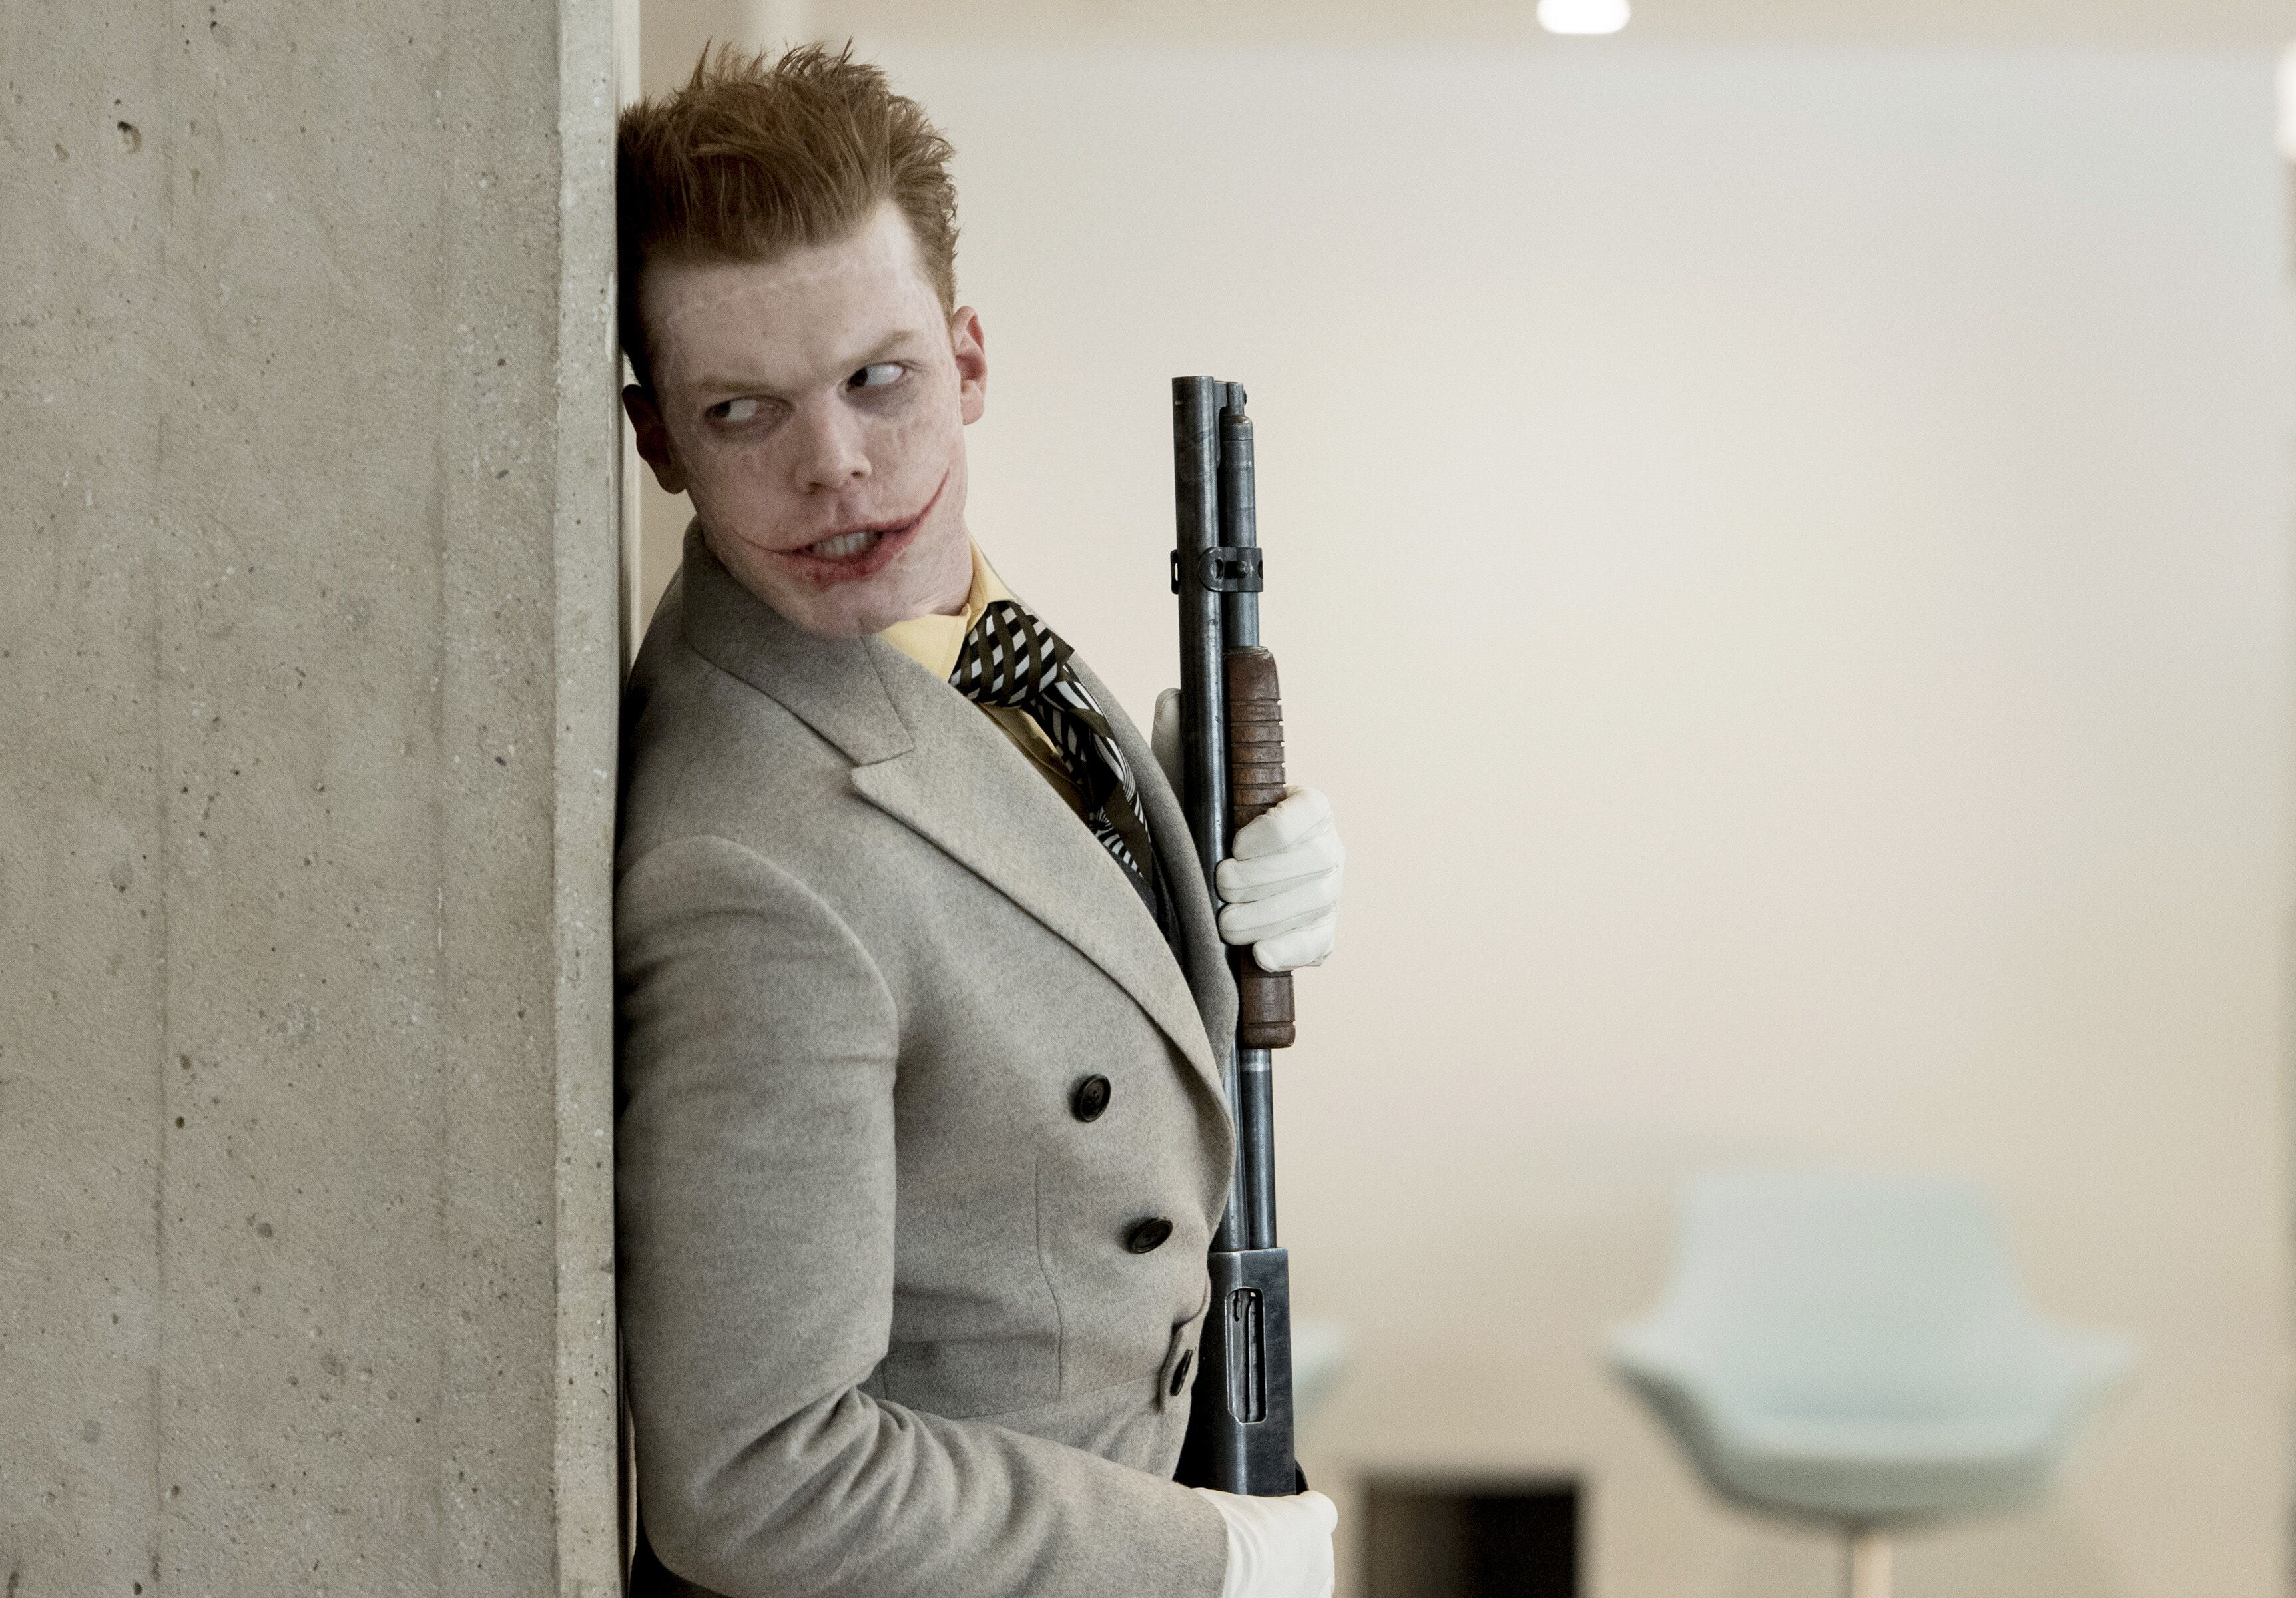 Gotham: Is Jerome or Jeremiah Valeska the real Joker?